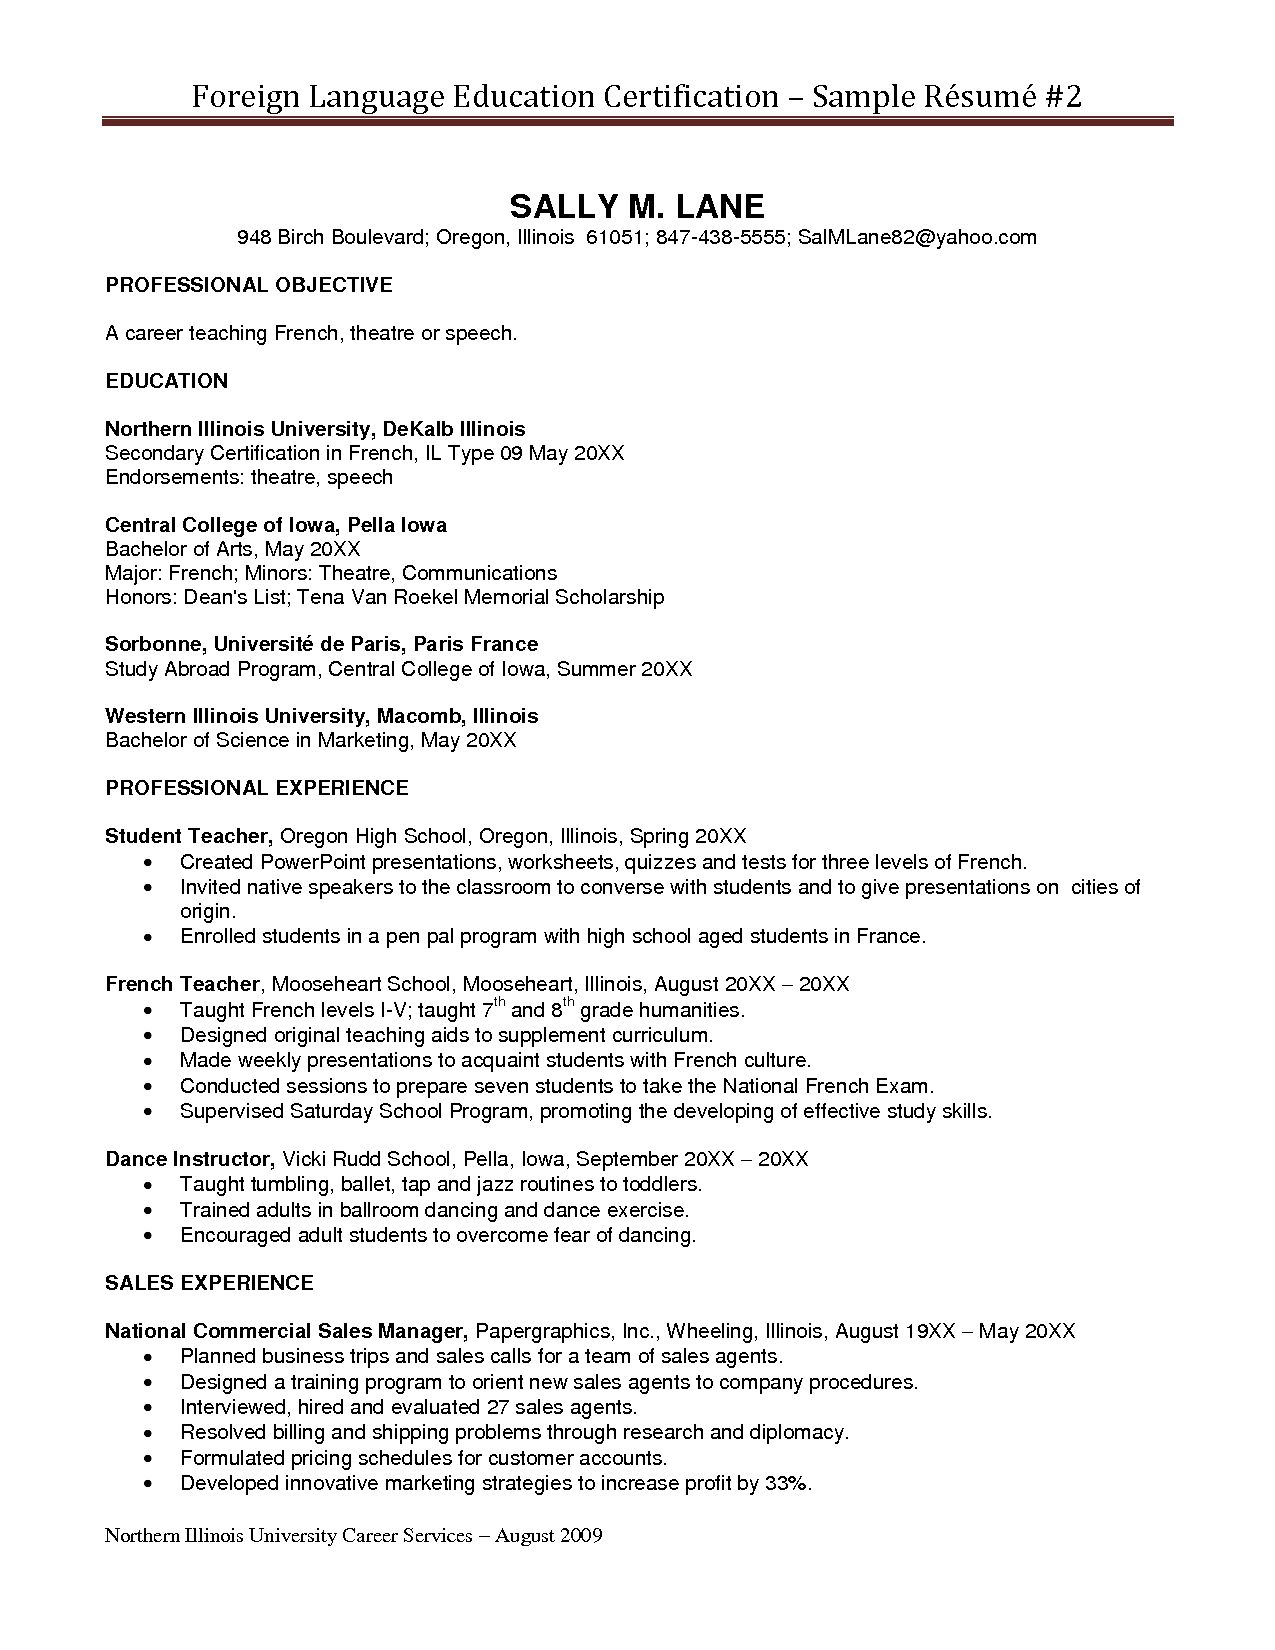 Certifications On A Resume Certification On Resume Example ...